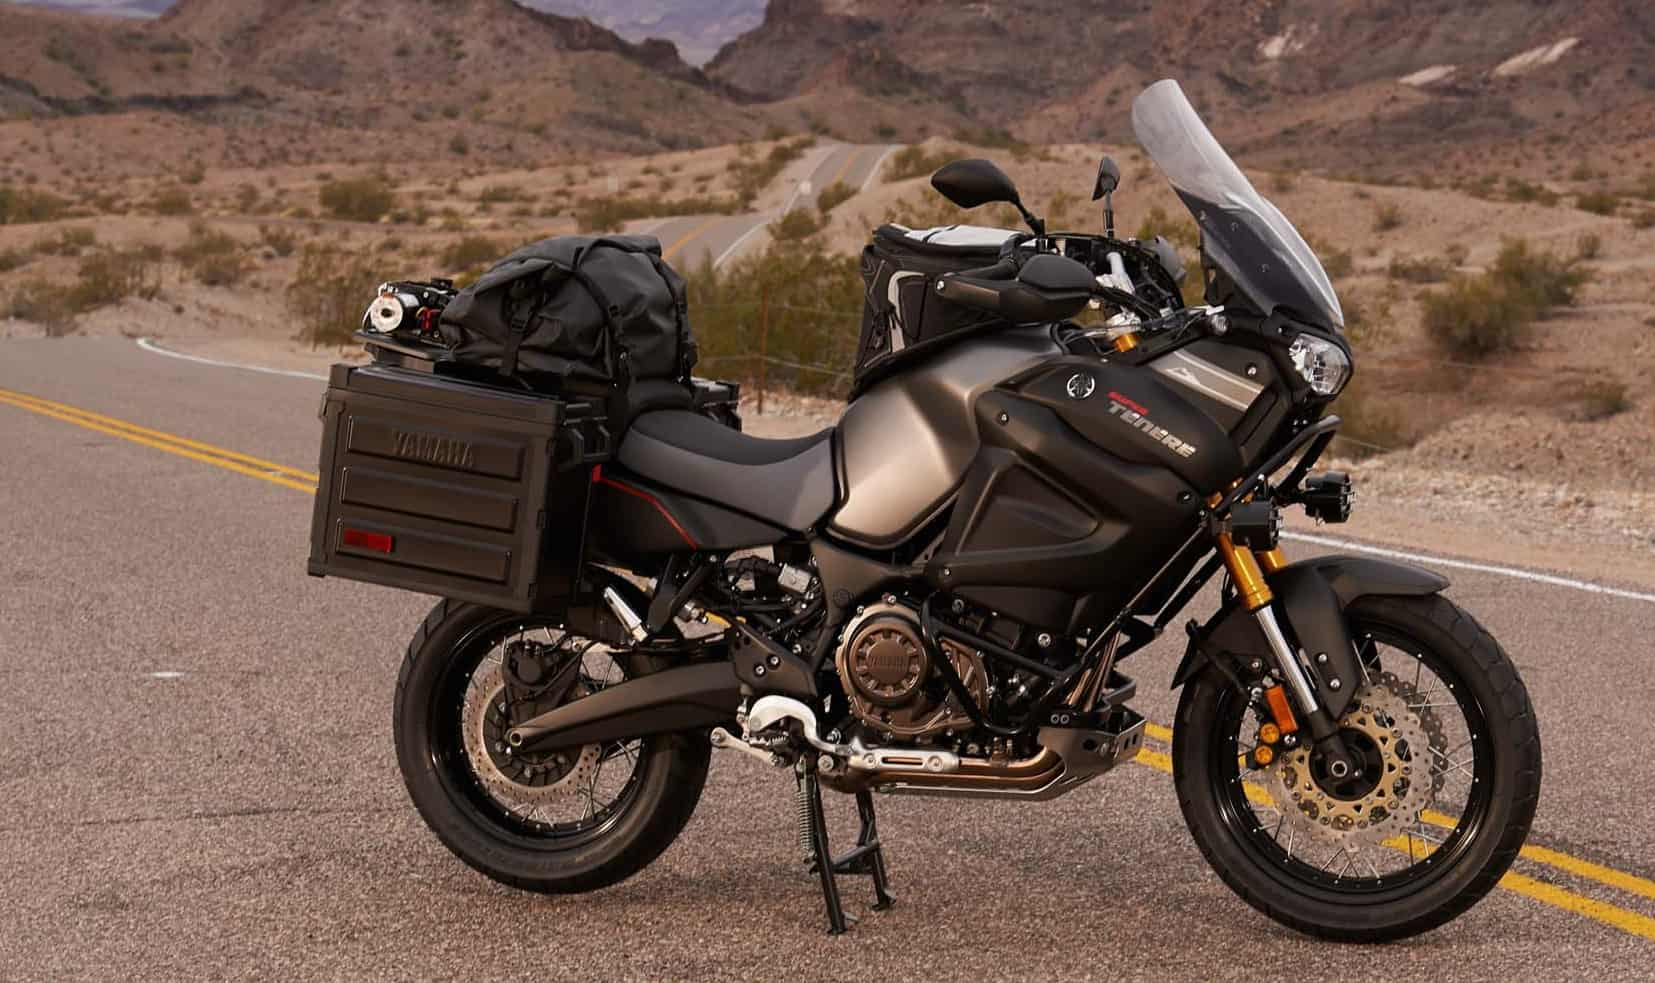 Yamaha Super Ténéré – adventure motorcycle